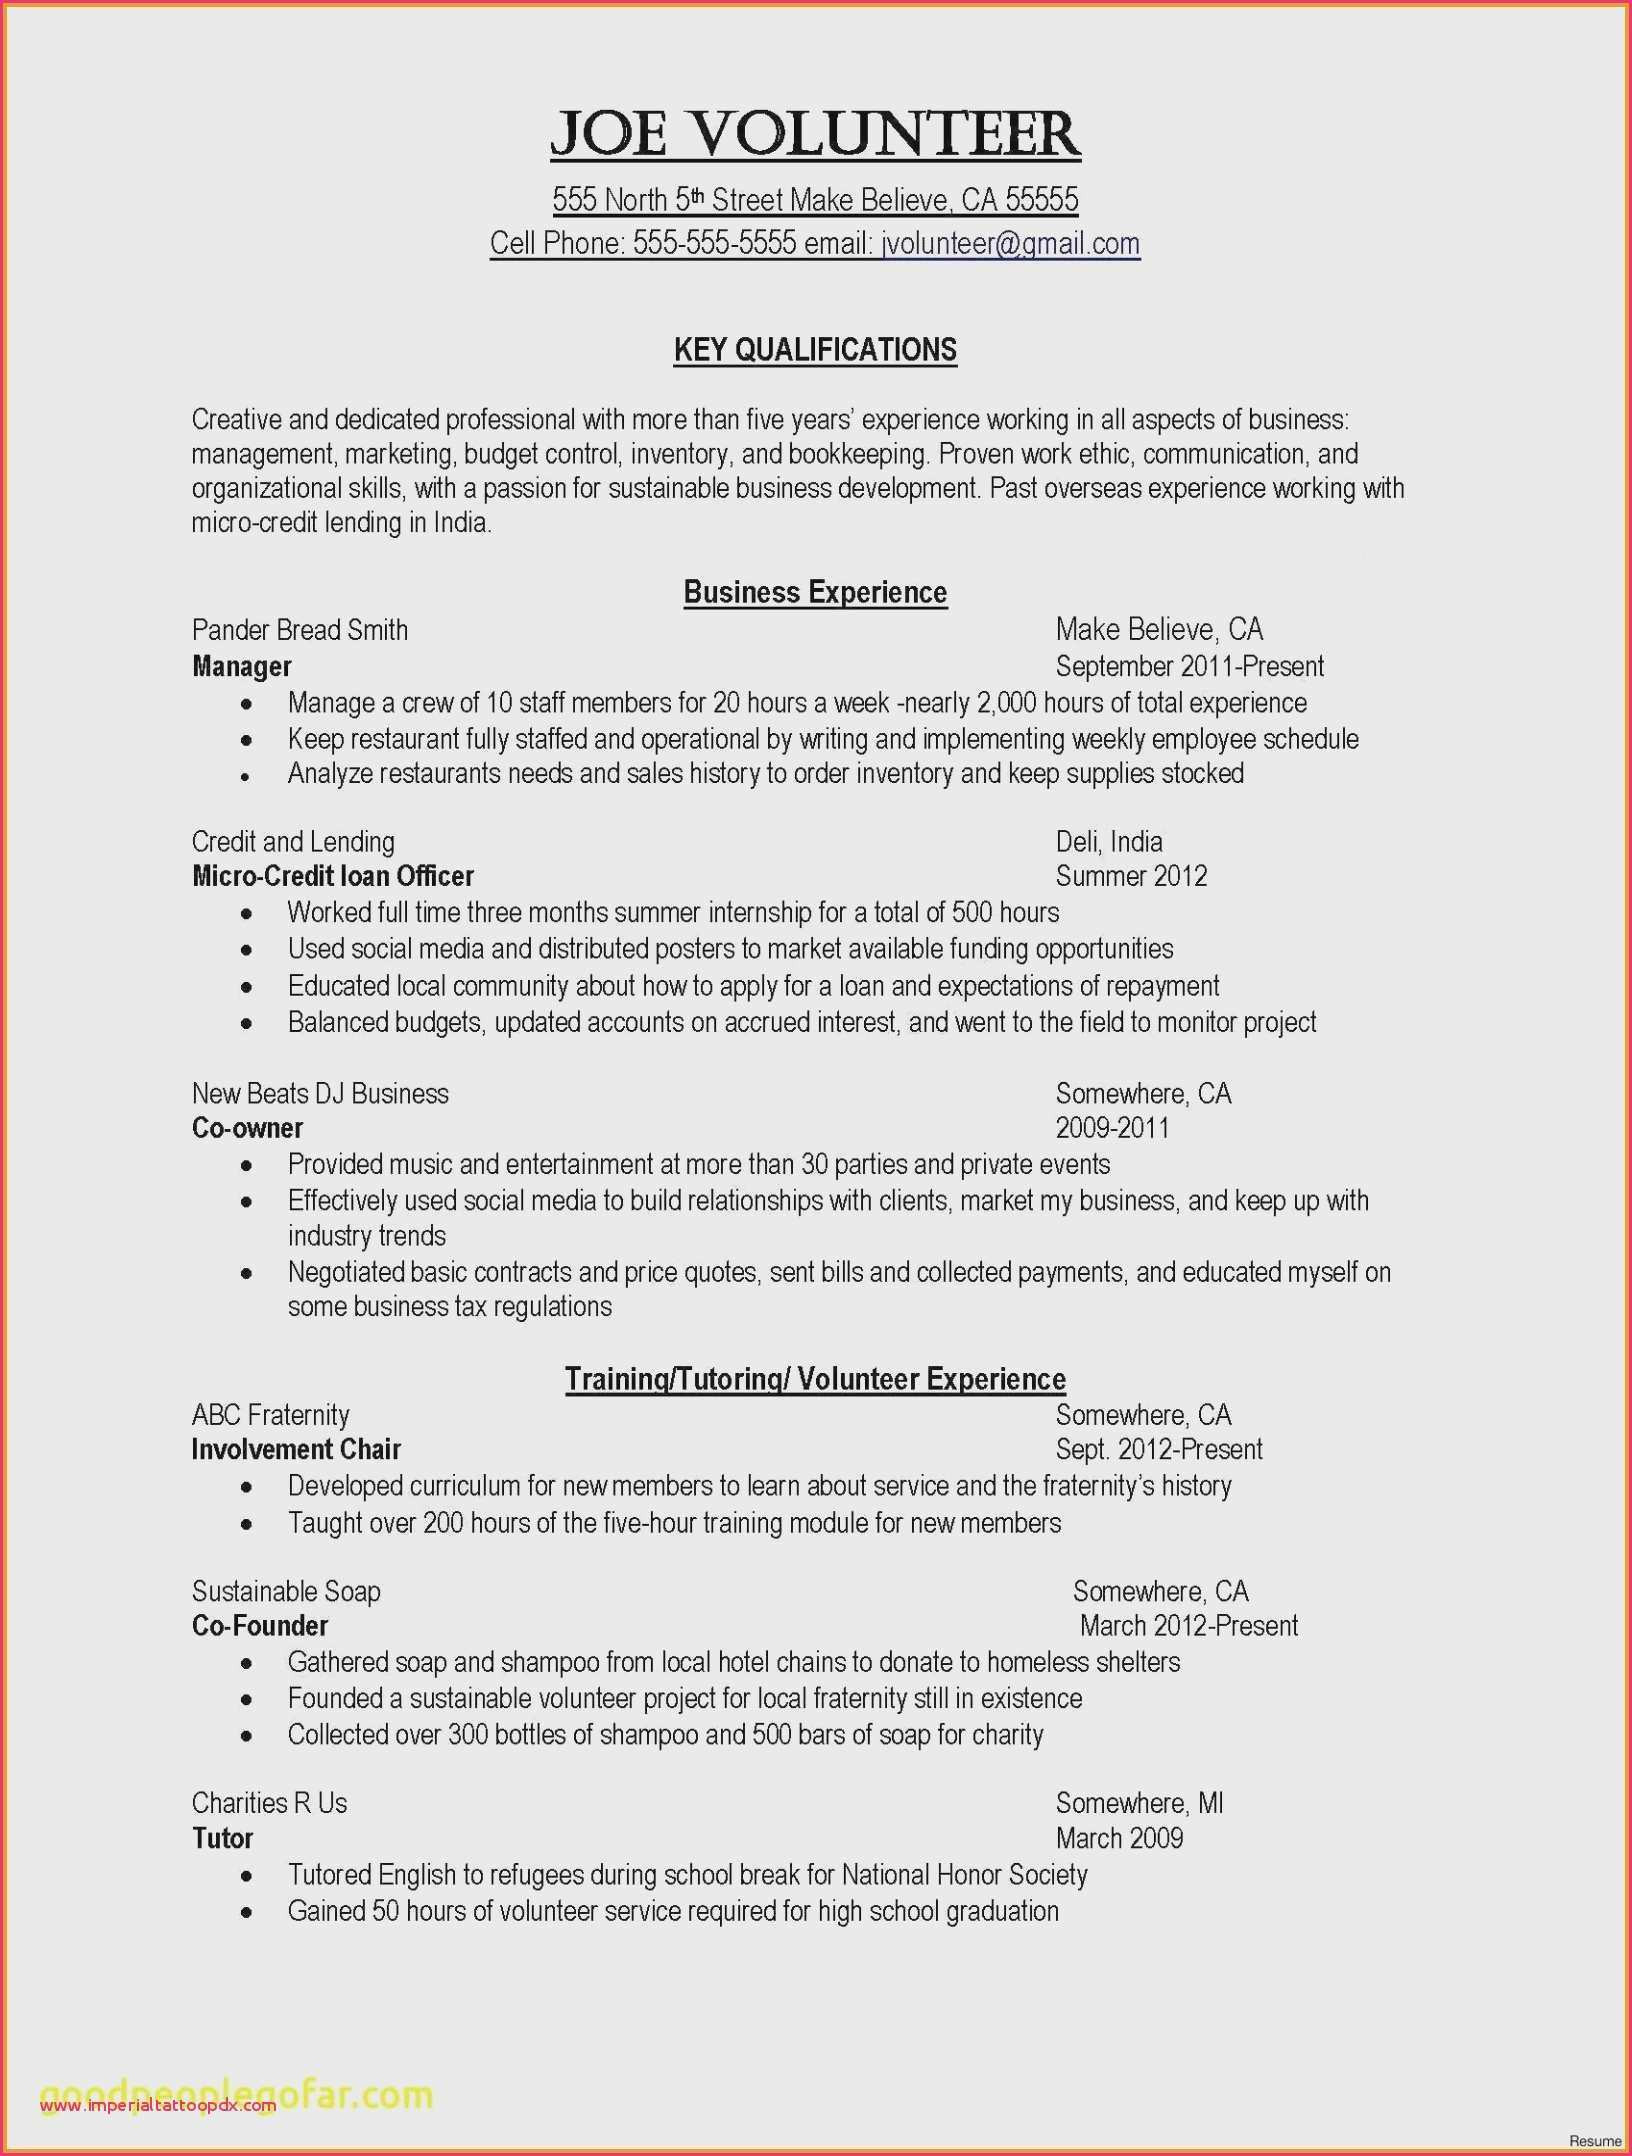 Best Resume Companies - Free Resume Templates to Download Beautiful Fresh Pr Template